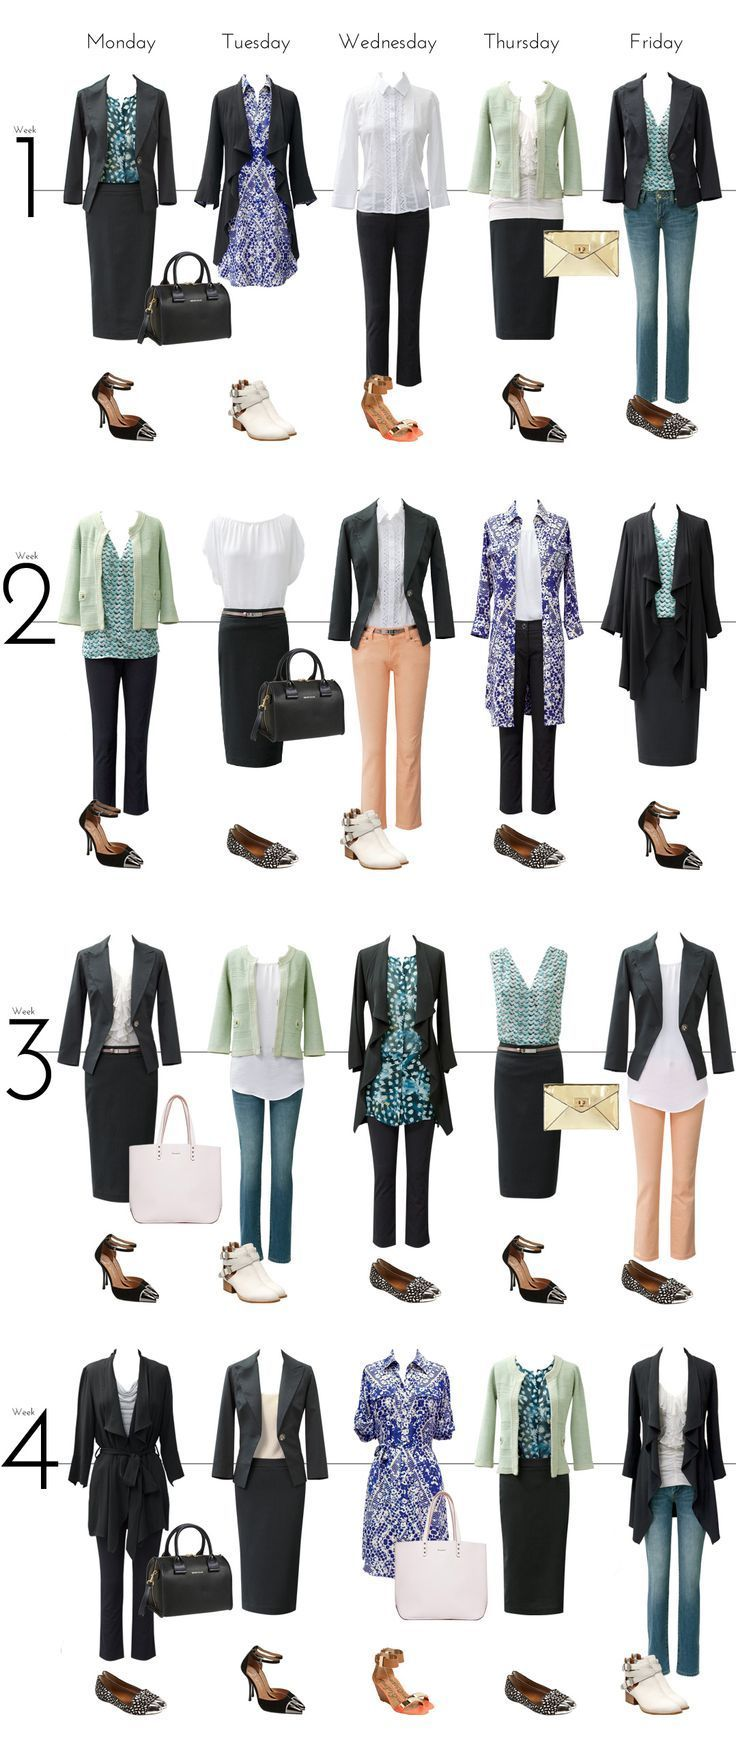 15 ITEMS: 1.CAbi Bossy Blazer 2.CAbi Jewel Shirt Dress 3.CAbi Knife Pleat Tank 4.CAbi Tweet Top 5.CAbi la Carte Jacket 6.CAbi Eliza Blouse 7.CAbi Society Sweater 8.CAbi Creamsicle Cropped Bree Jean 9.CAbi Pearl Slip 10.CAbi Piqu pant 11.CAbi Collete Top 12.CAbi Fall In Tee 13.CAbi Ruby Jean 14.CAbi Avery Tunic 15.CAbi Bossy skirt/